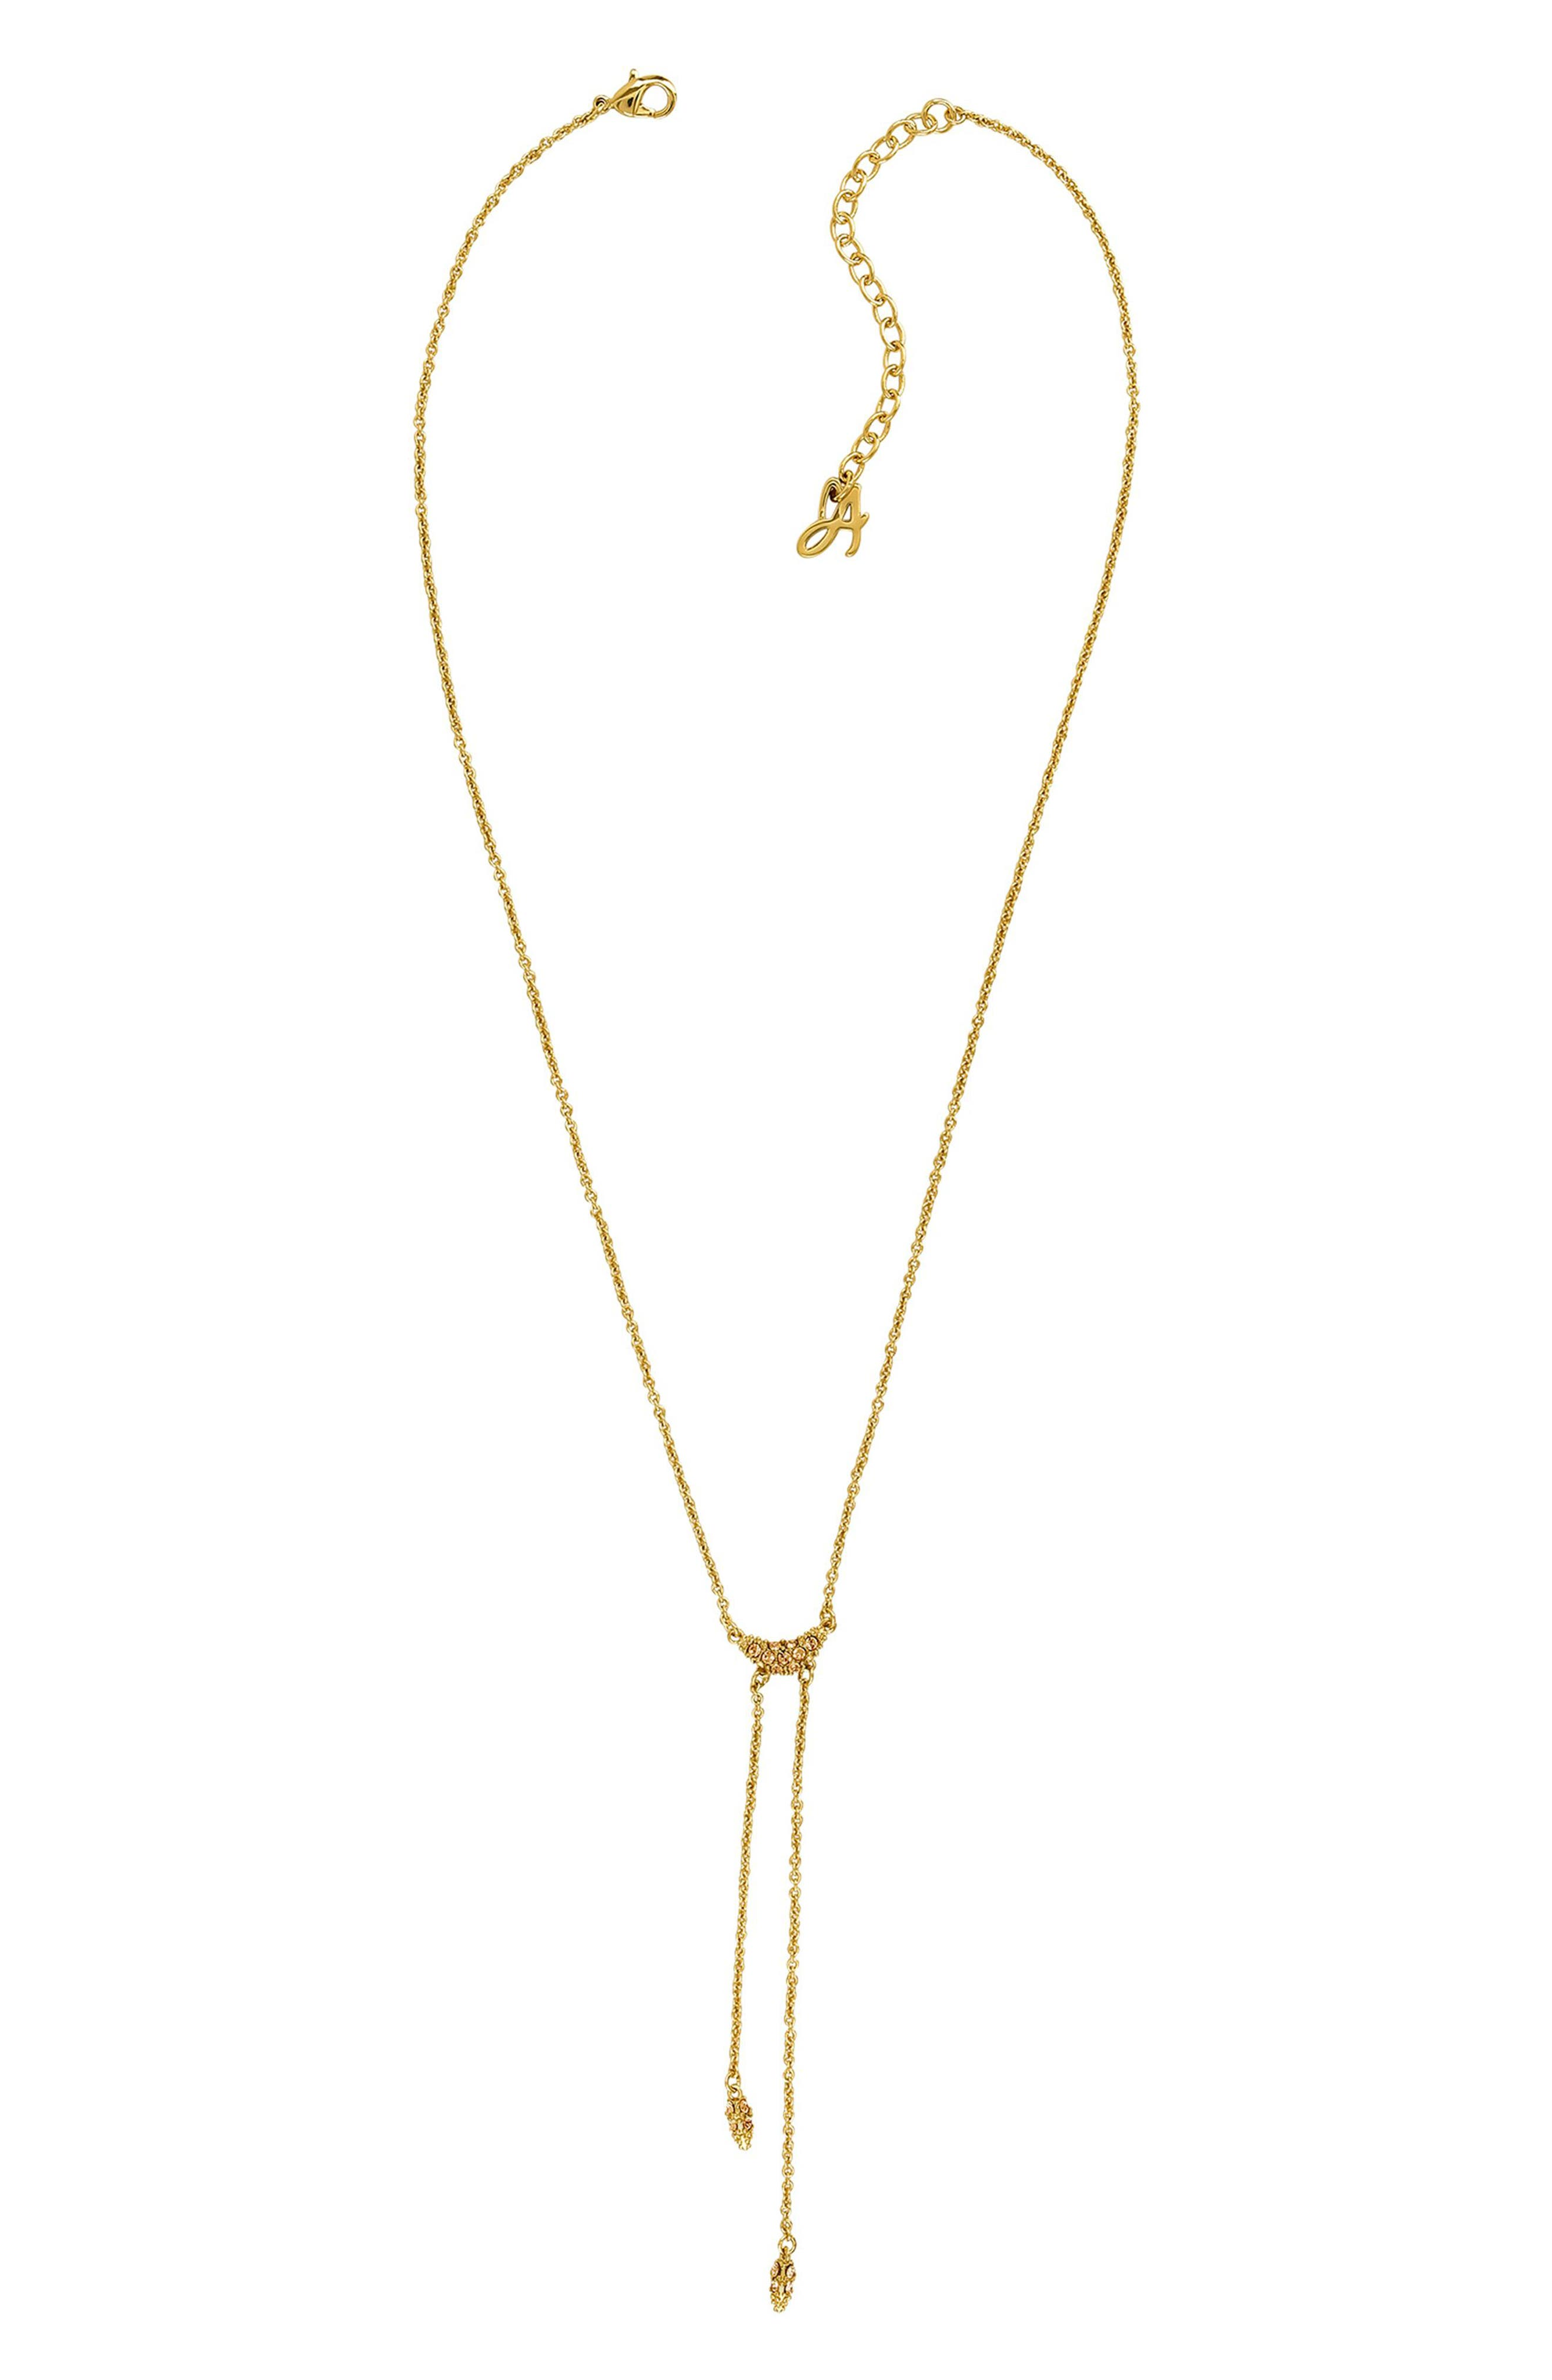 ADORÉE Pave Crystal Swoop Necklace in Gold